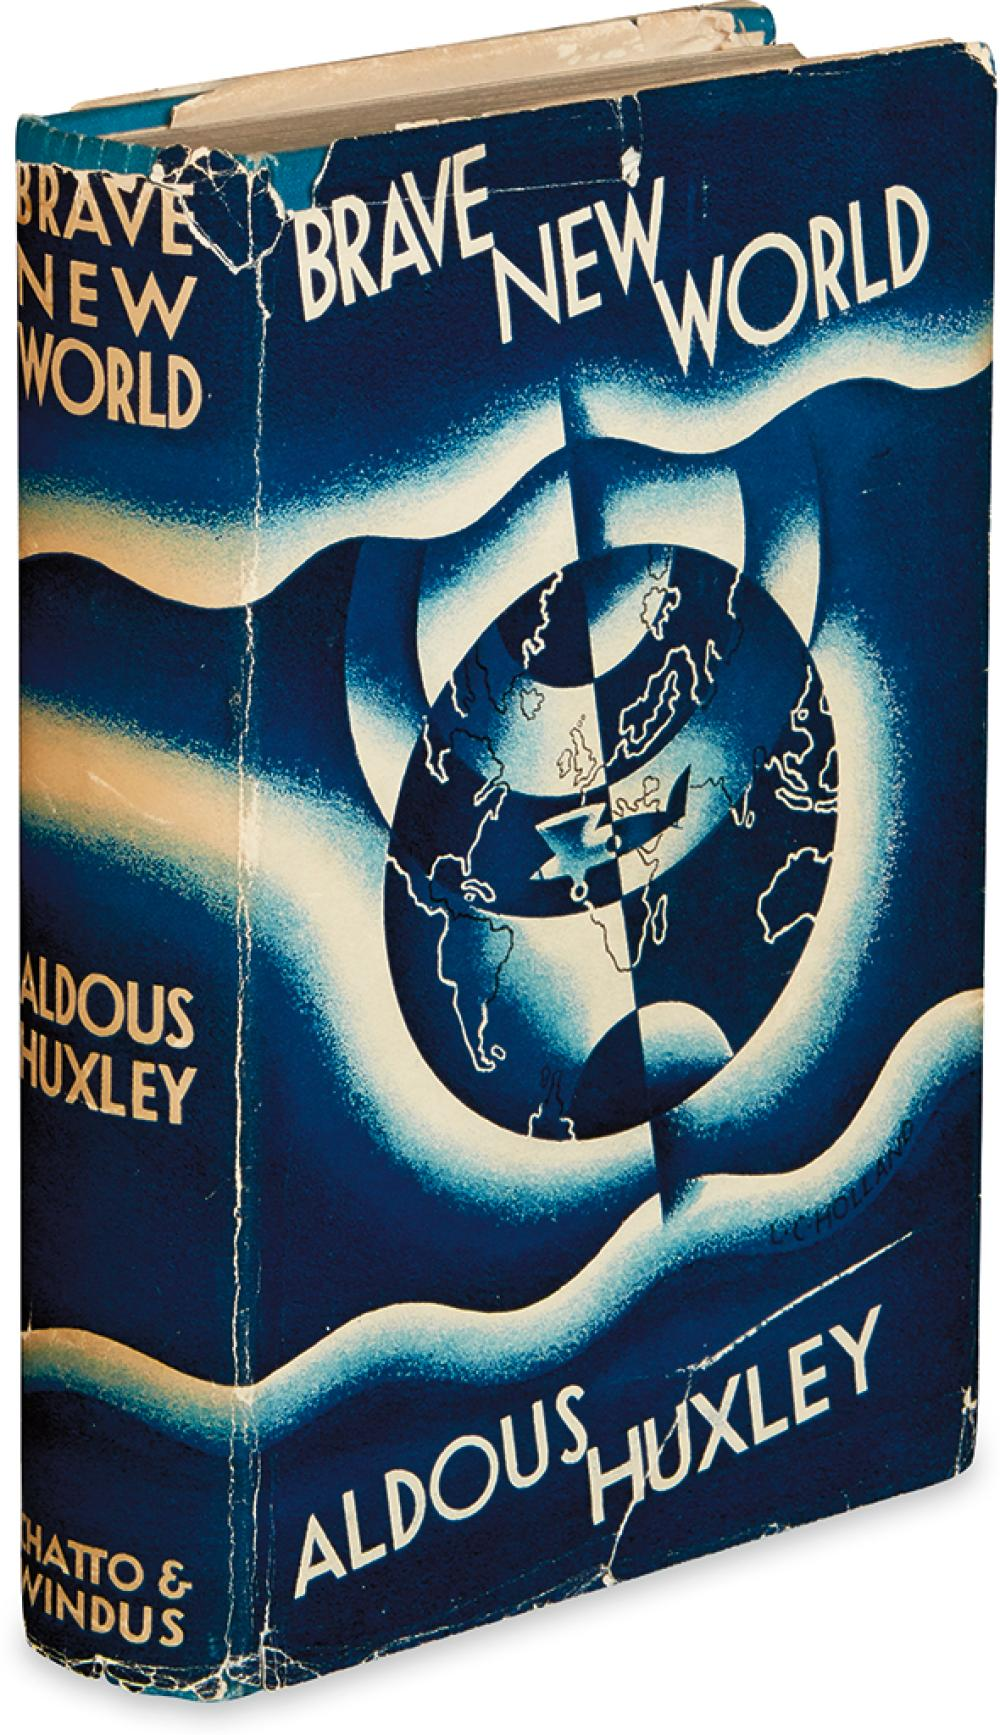 HUXLEY, ALDOUS. Brave New World.